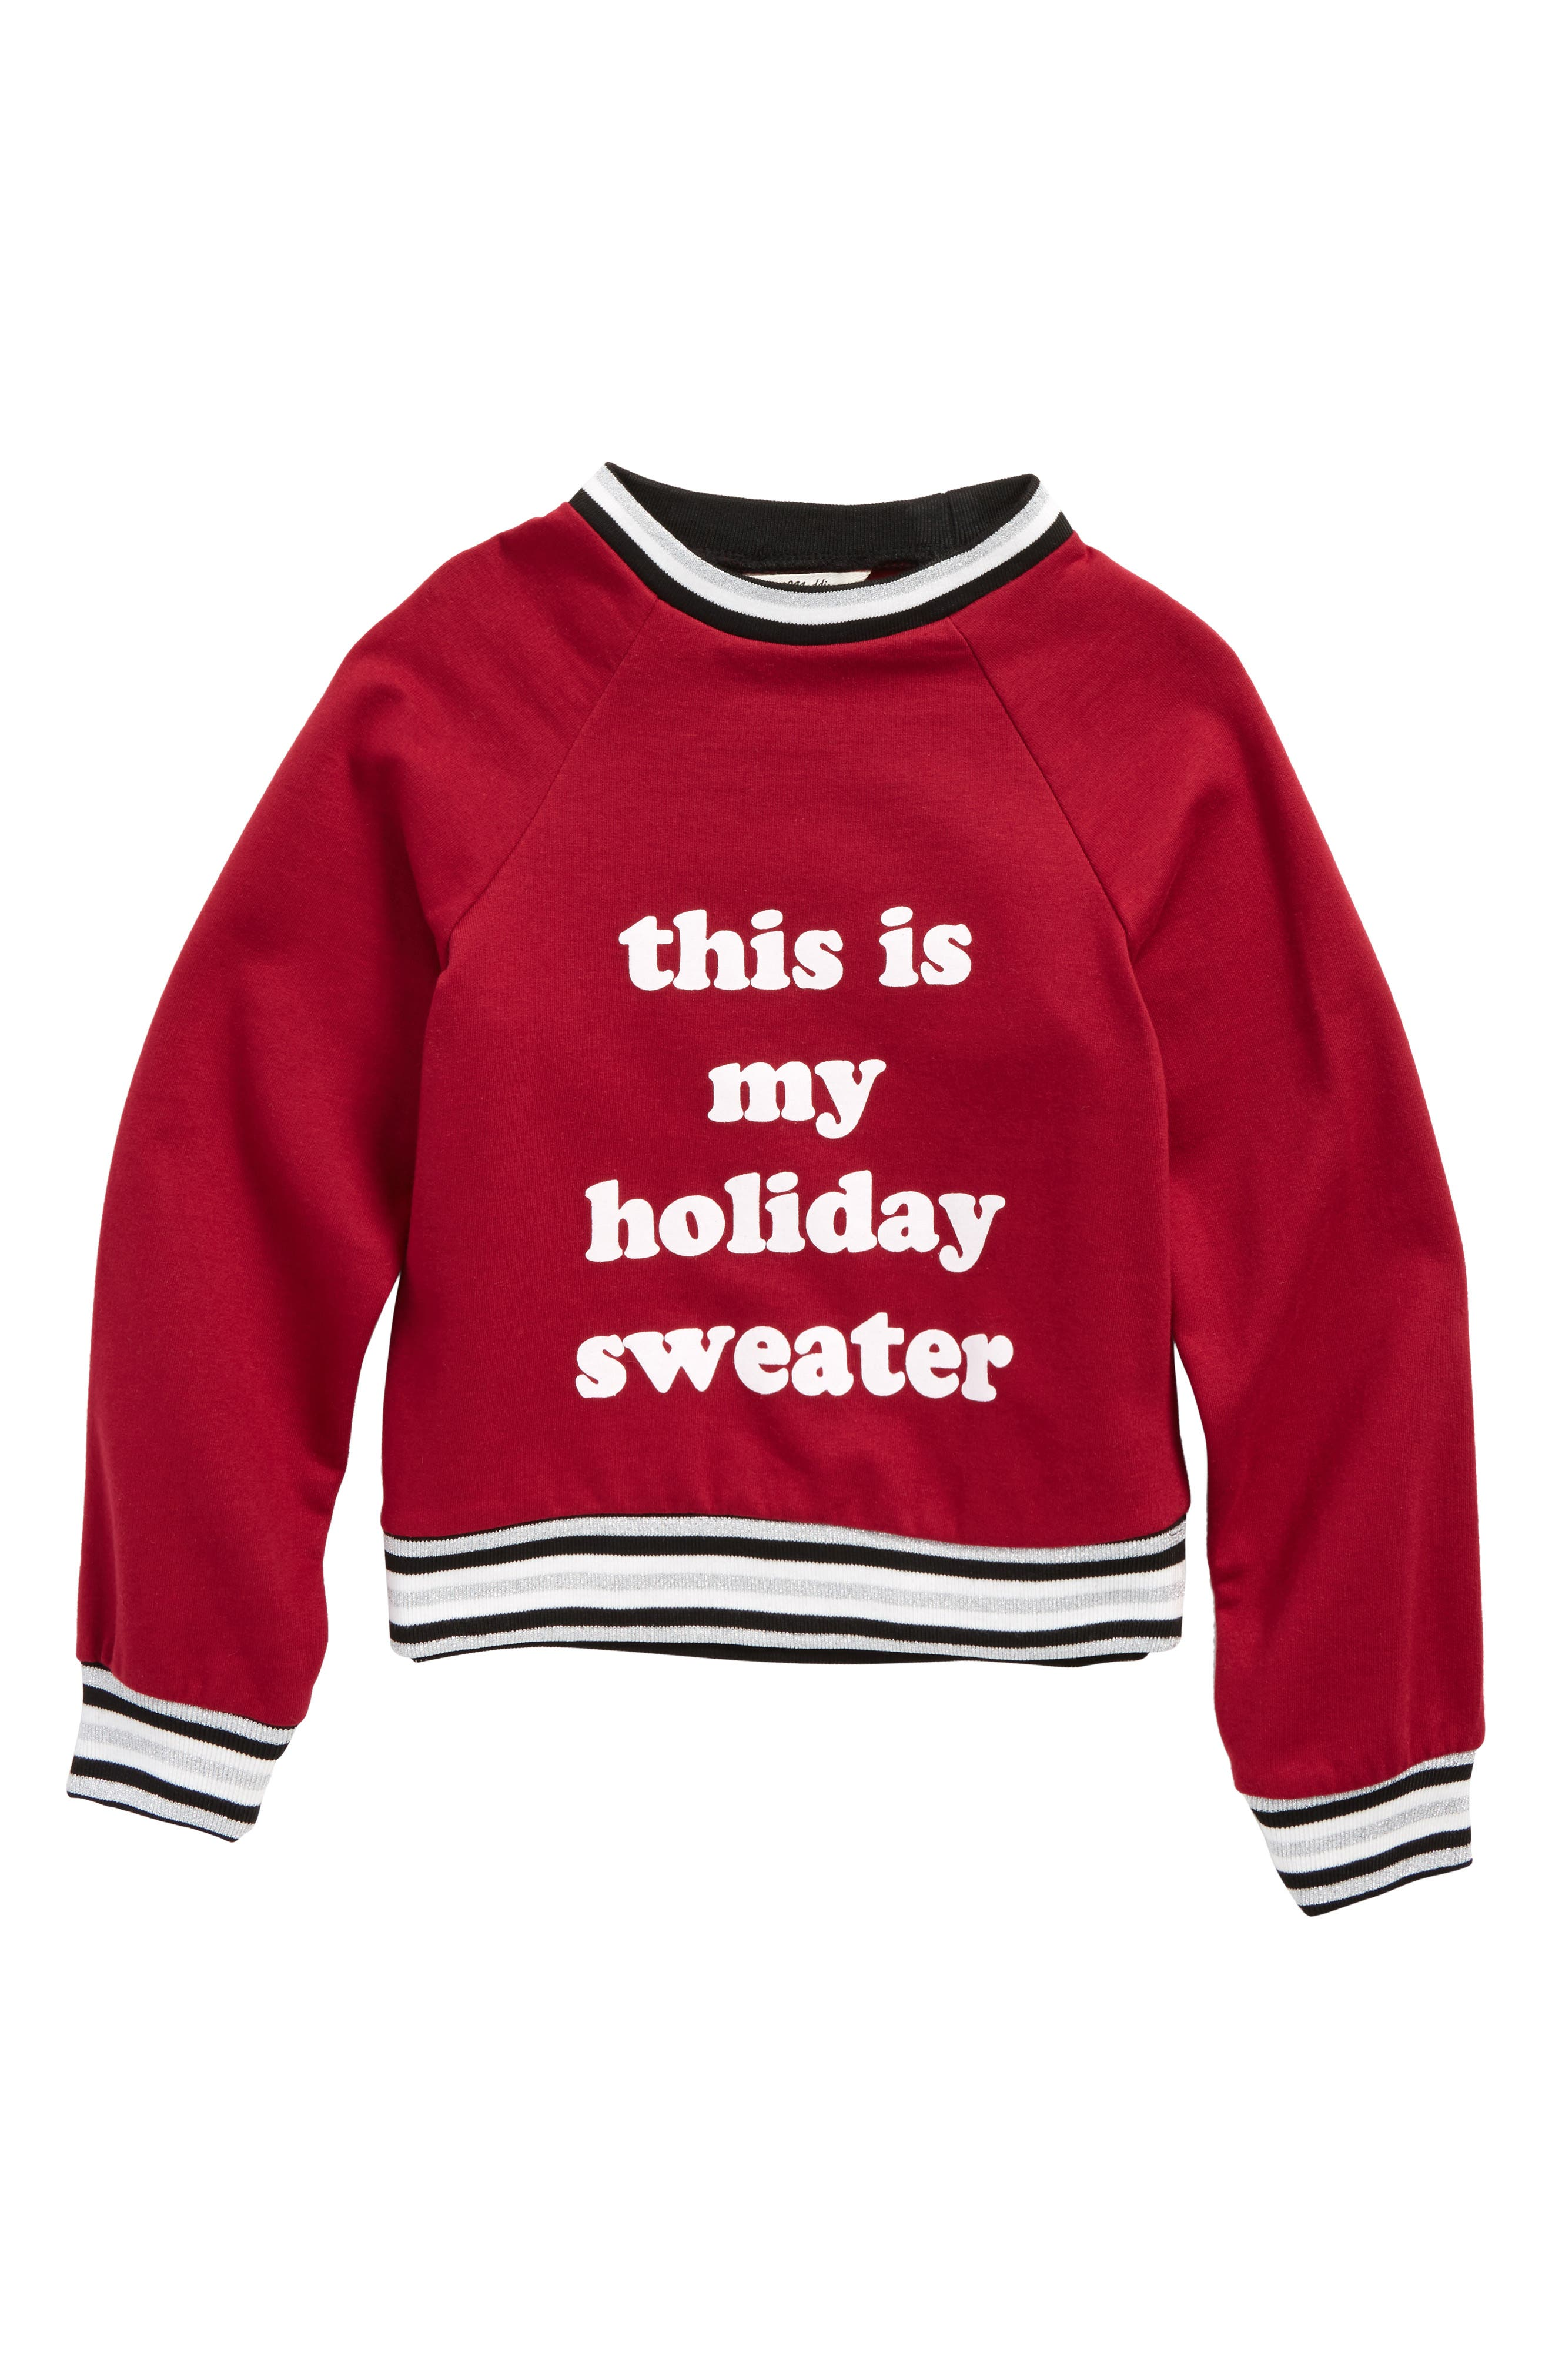 This Is My Holiday Sweater Graphic Sweatshirt,                         Main,                         color,